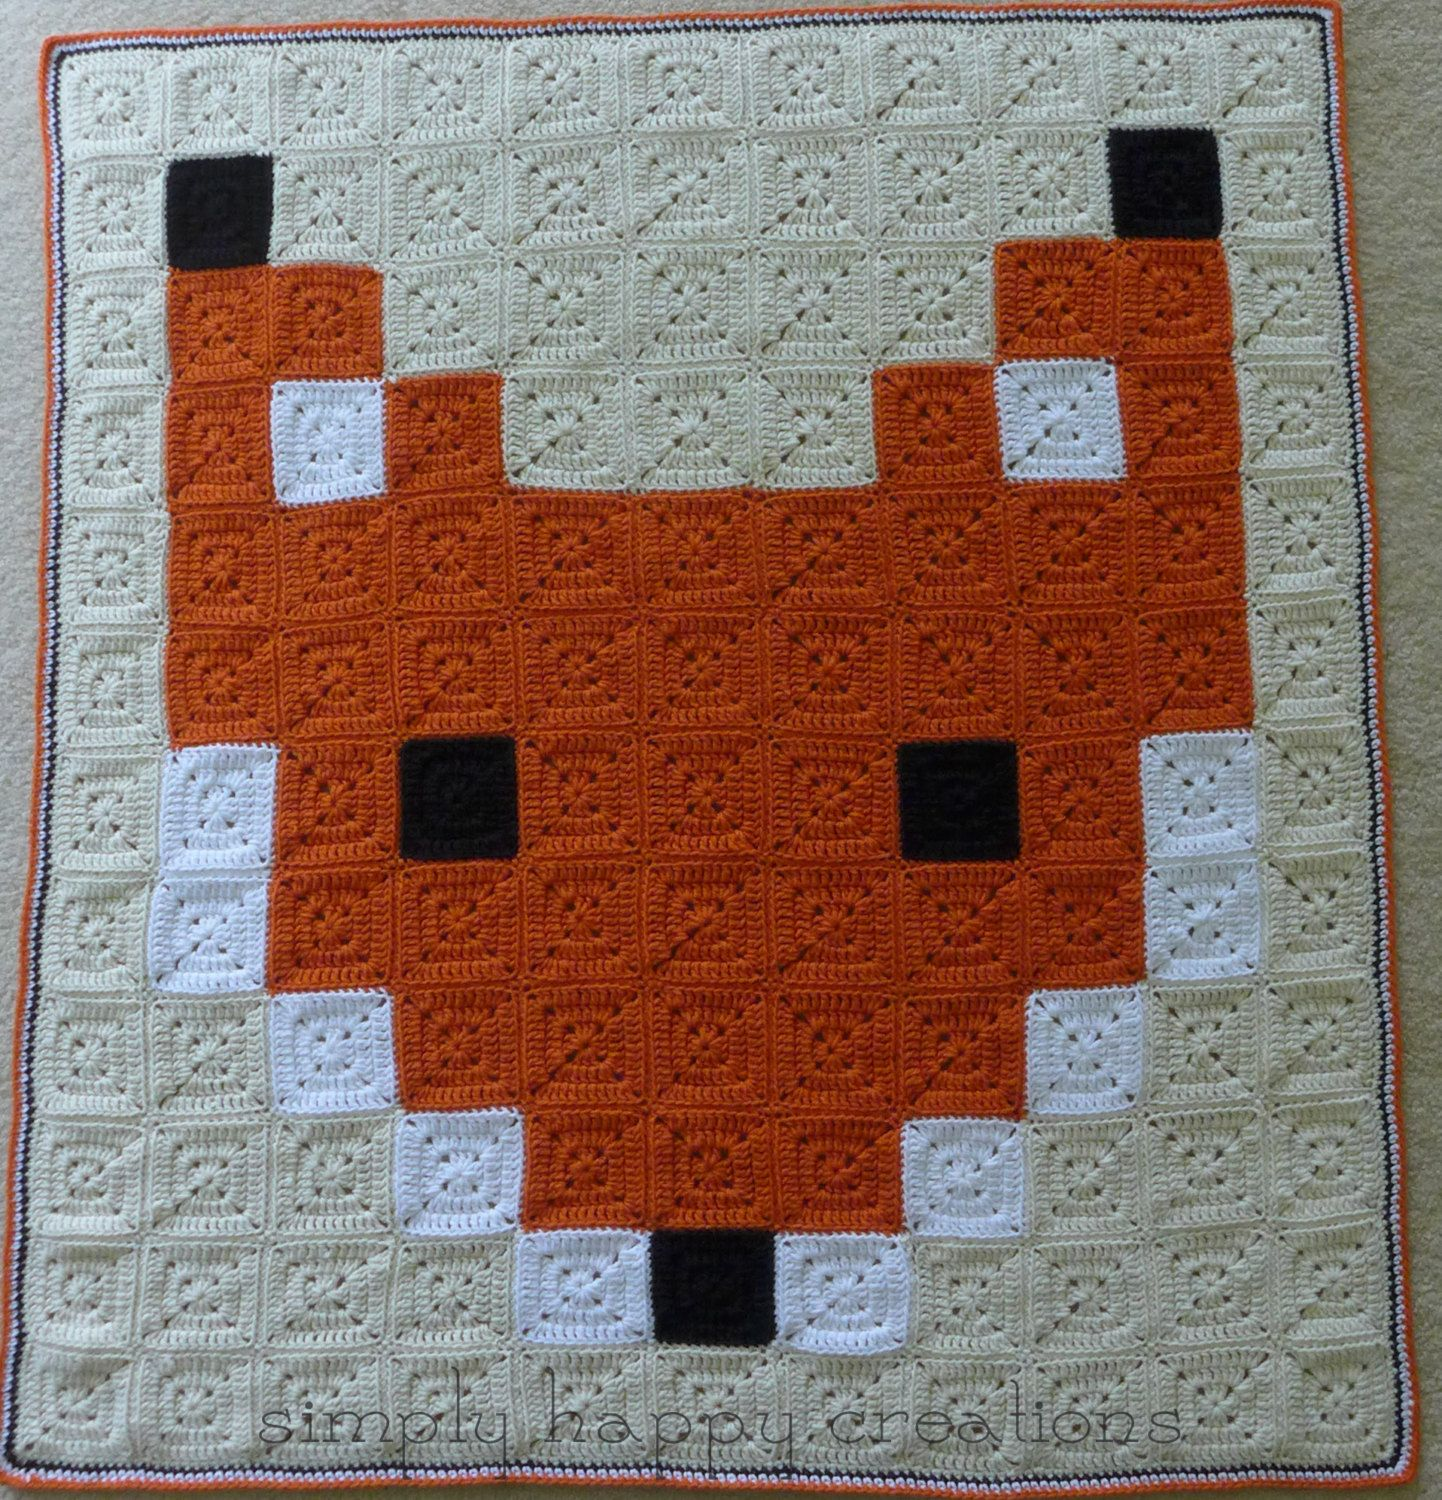 Made to ordercrochet 8 bit pixel art throw by simplyhappycreations made to ordercrochet 8 bit pixel art throw by simplyhappycreations bankloansurffo Images